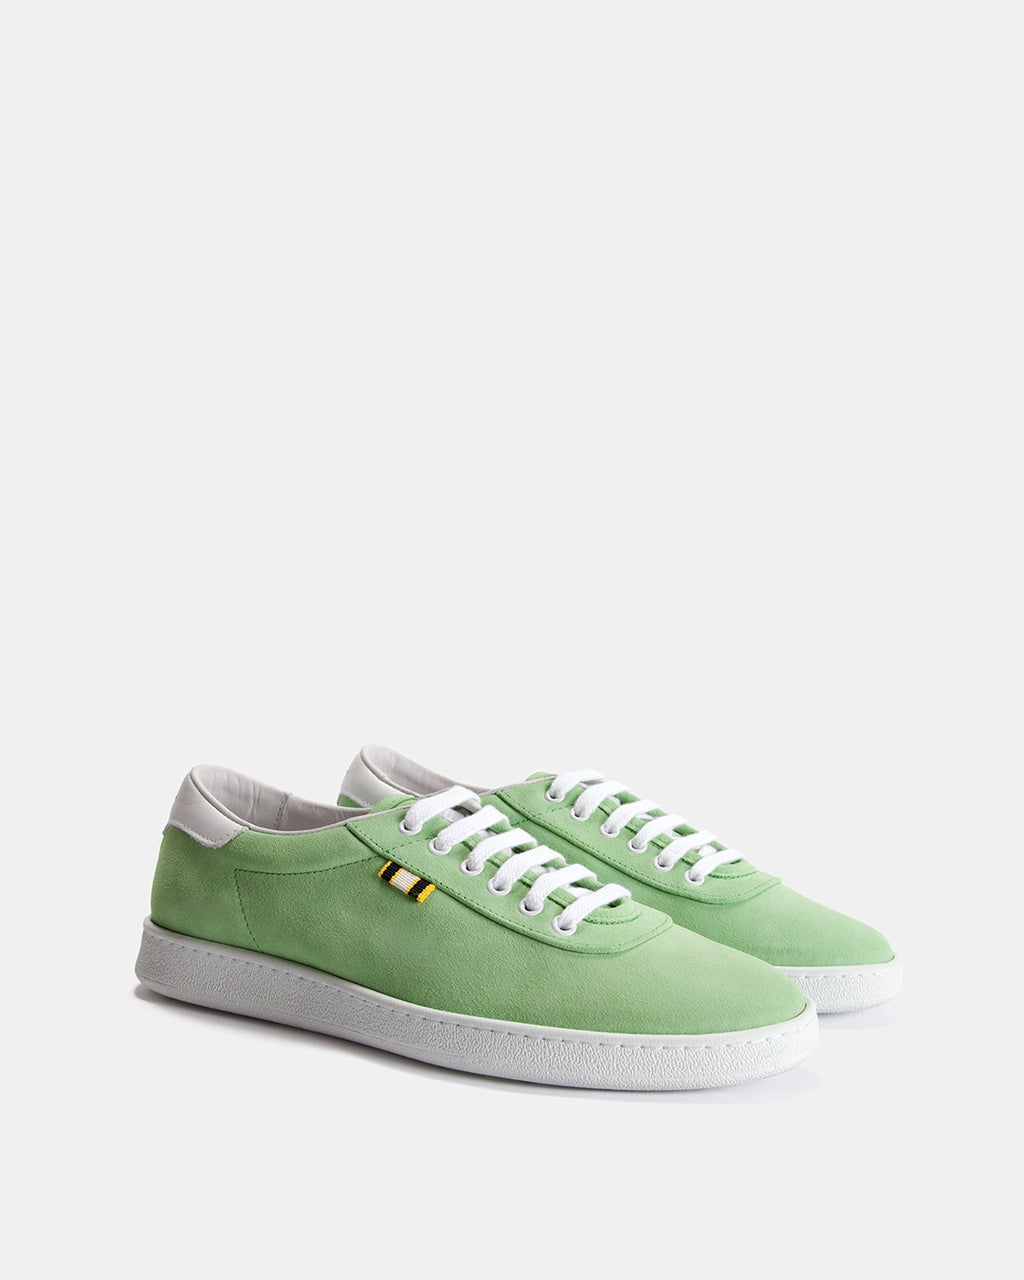 APR002 - Suede - Lime